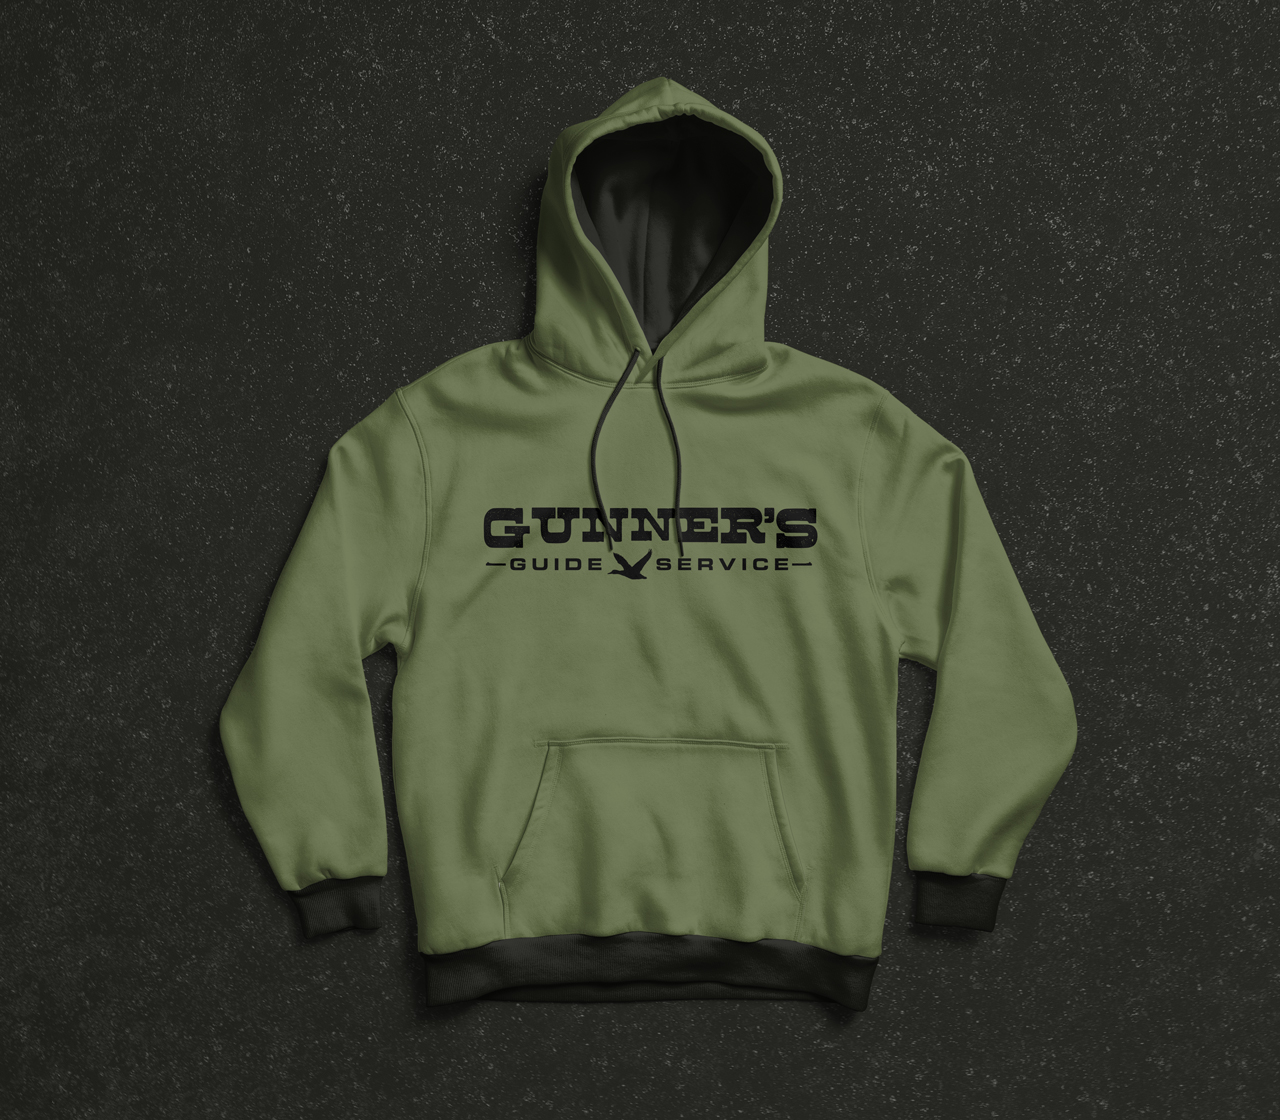 project gunners guide service logo hoodie